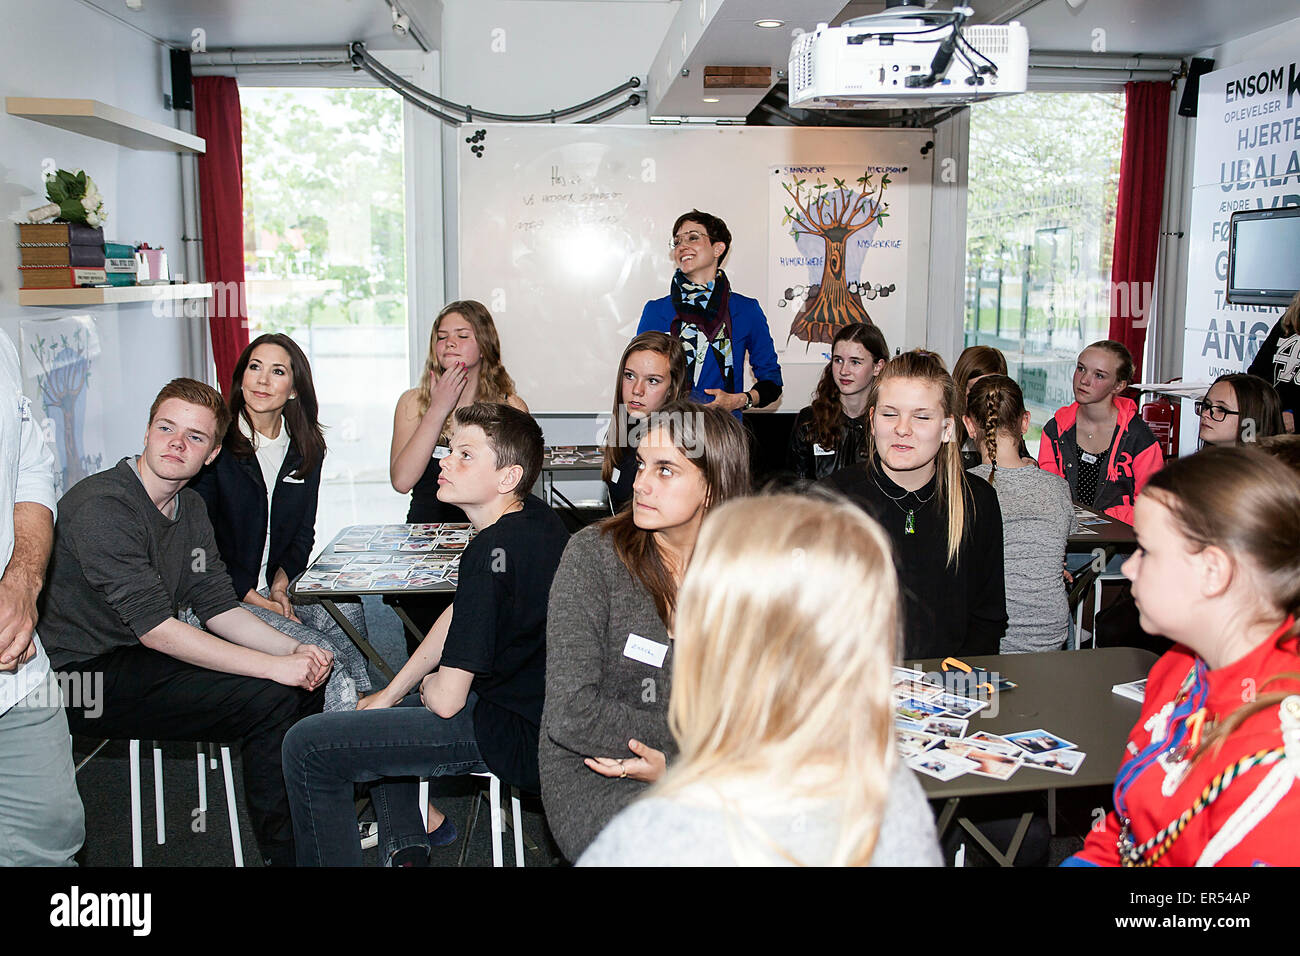 Ruds Vedby, Denmark. 27th May, 2015. Crown Princess Mary and school kids from  Ruds Vedby school in the first lesson - Stock Image